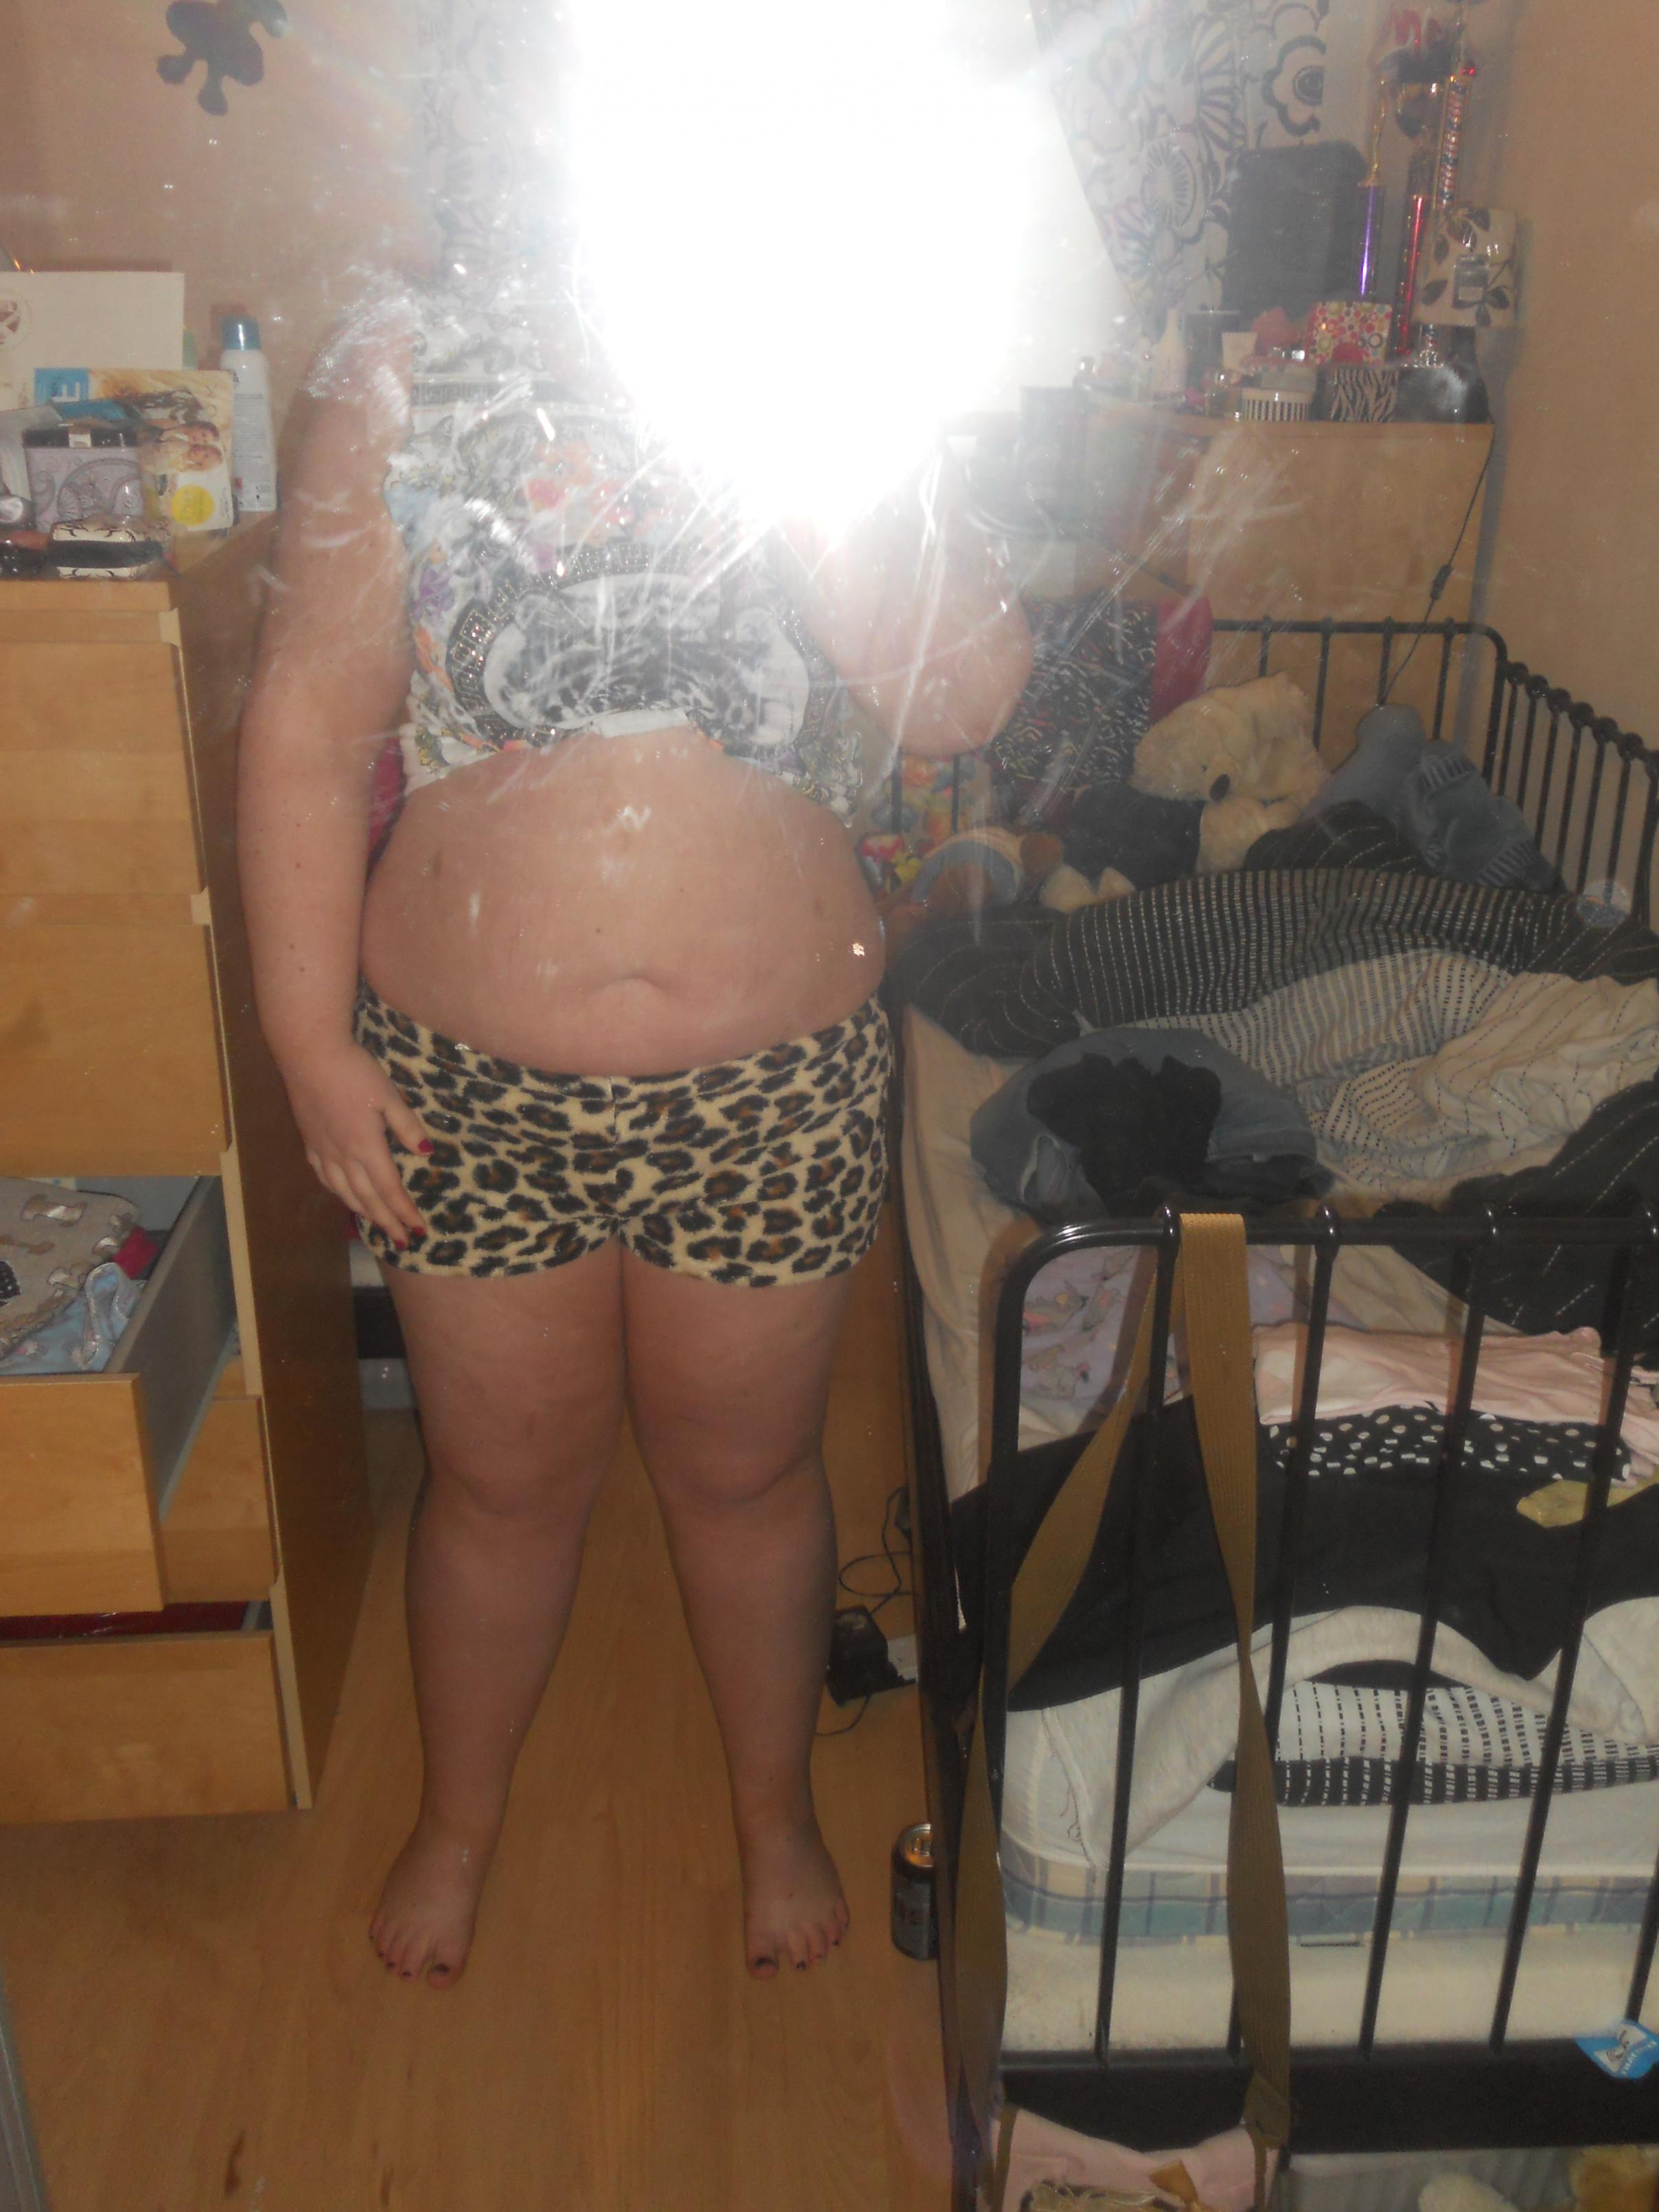 3 and a half months into my journey-dscn1851.jpg